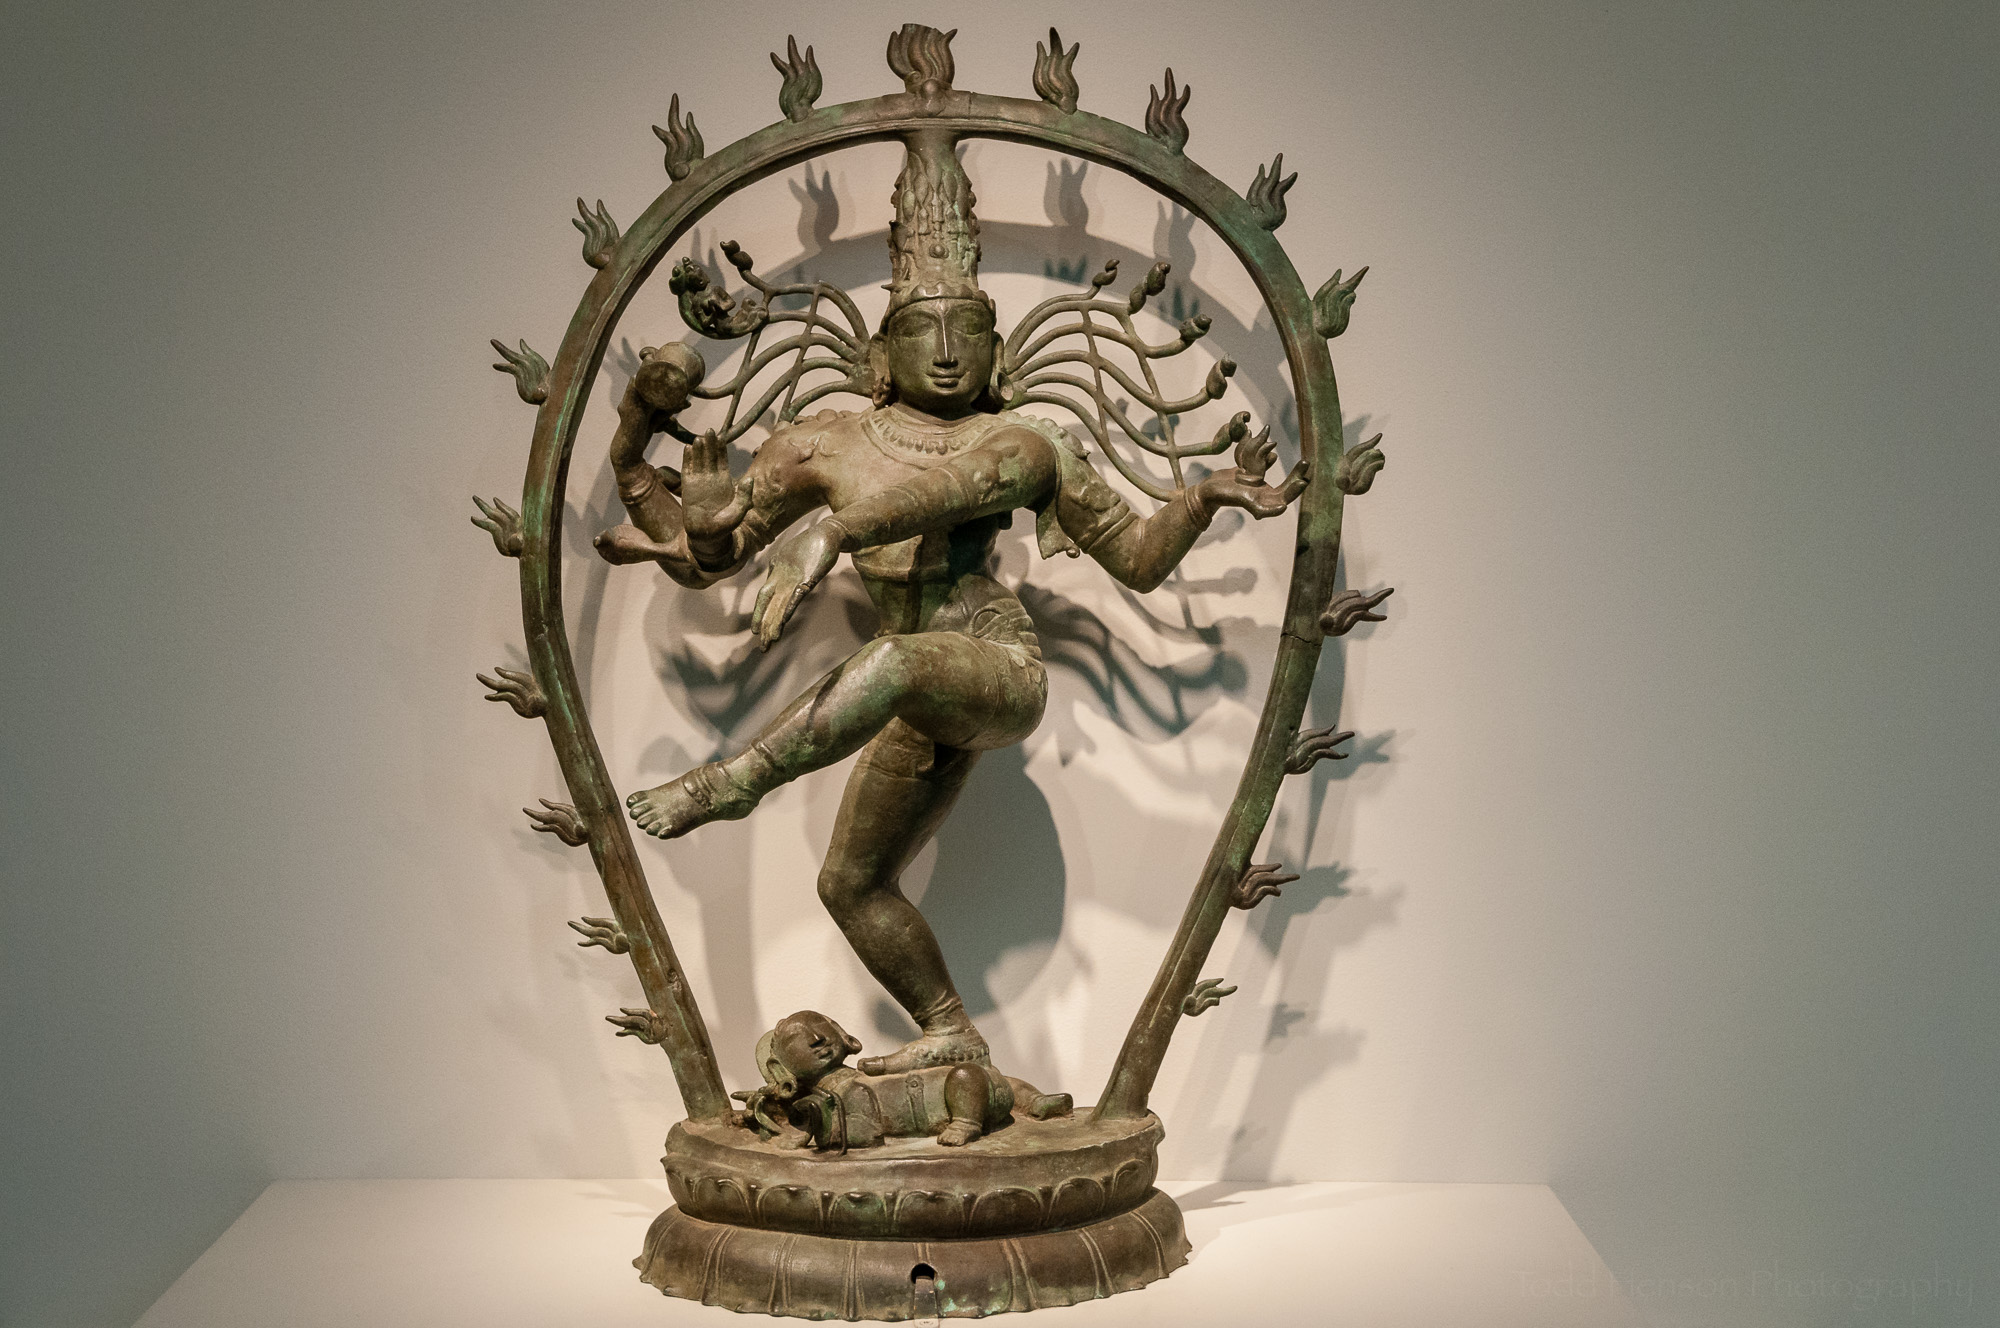 Shiva Nataraja (Lord of the Dance) at the Sackler Gallery